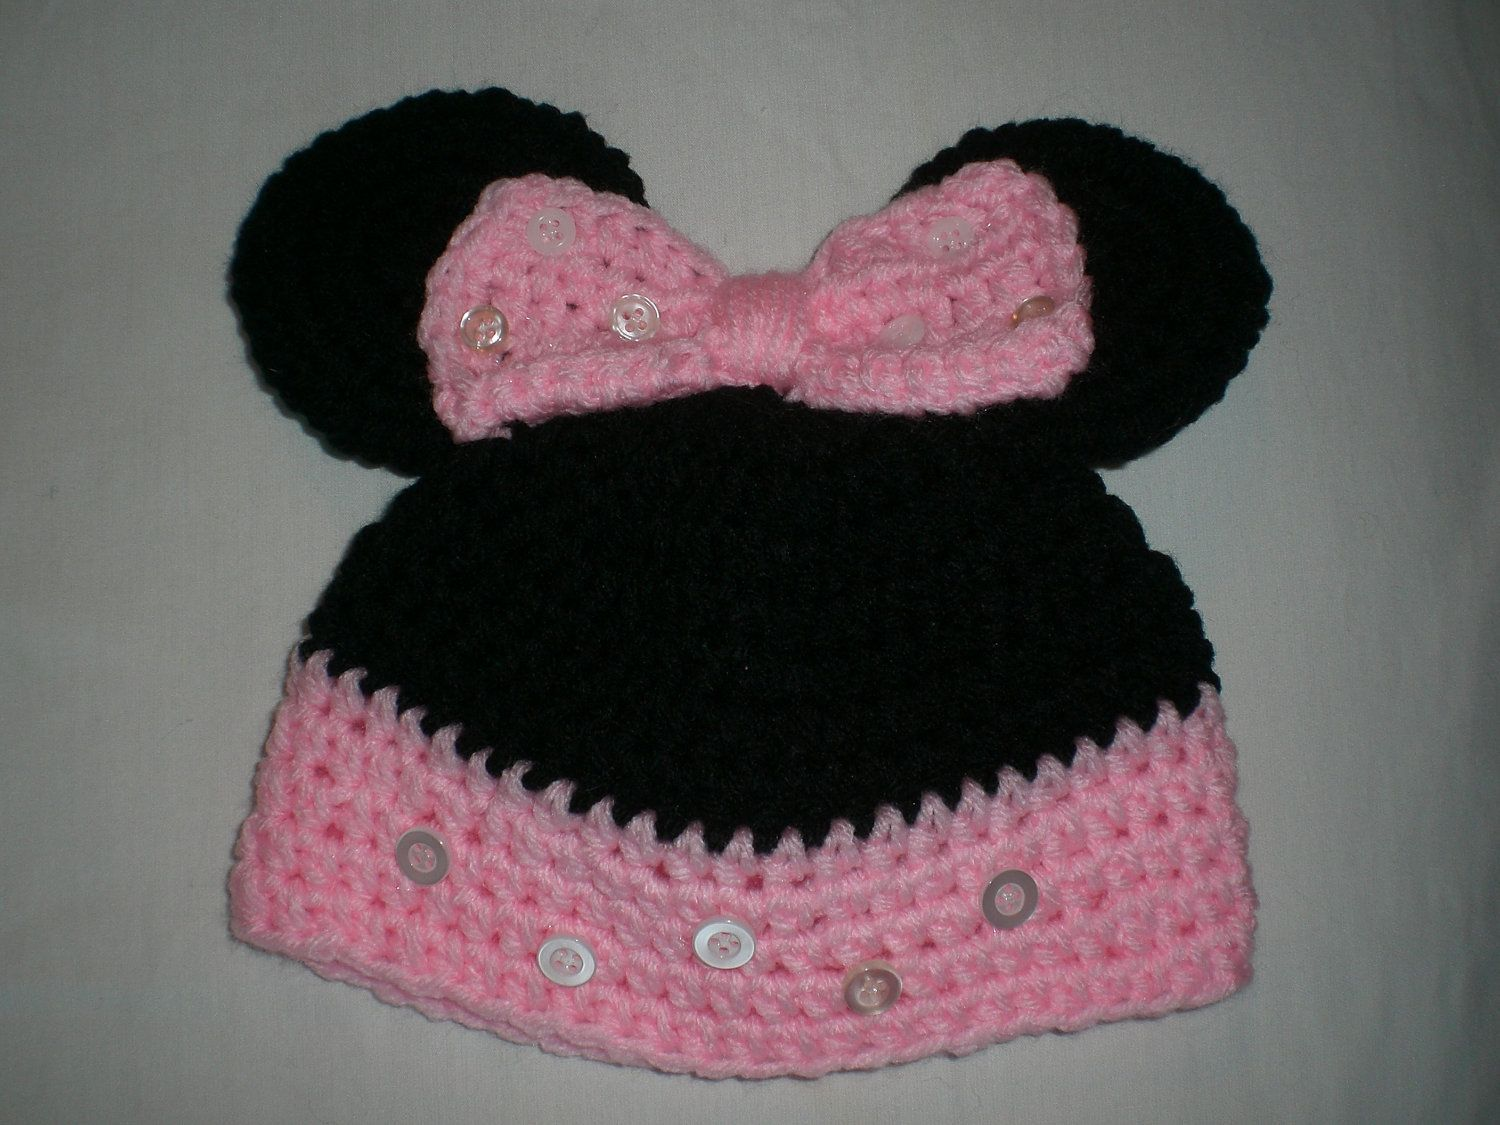 month baby crochet character hat minny mouse hat disneyland